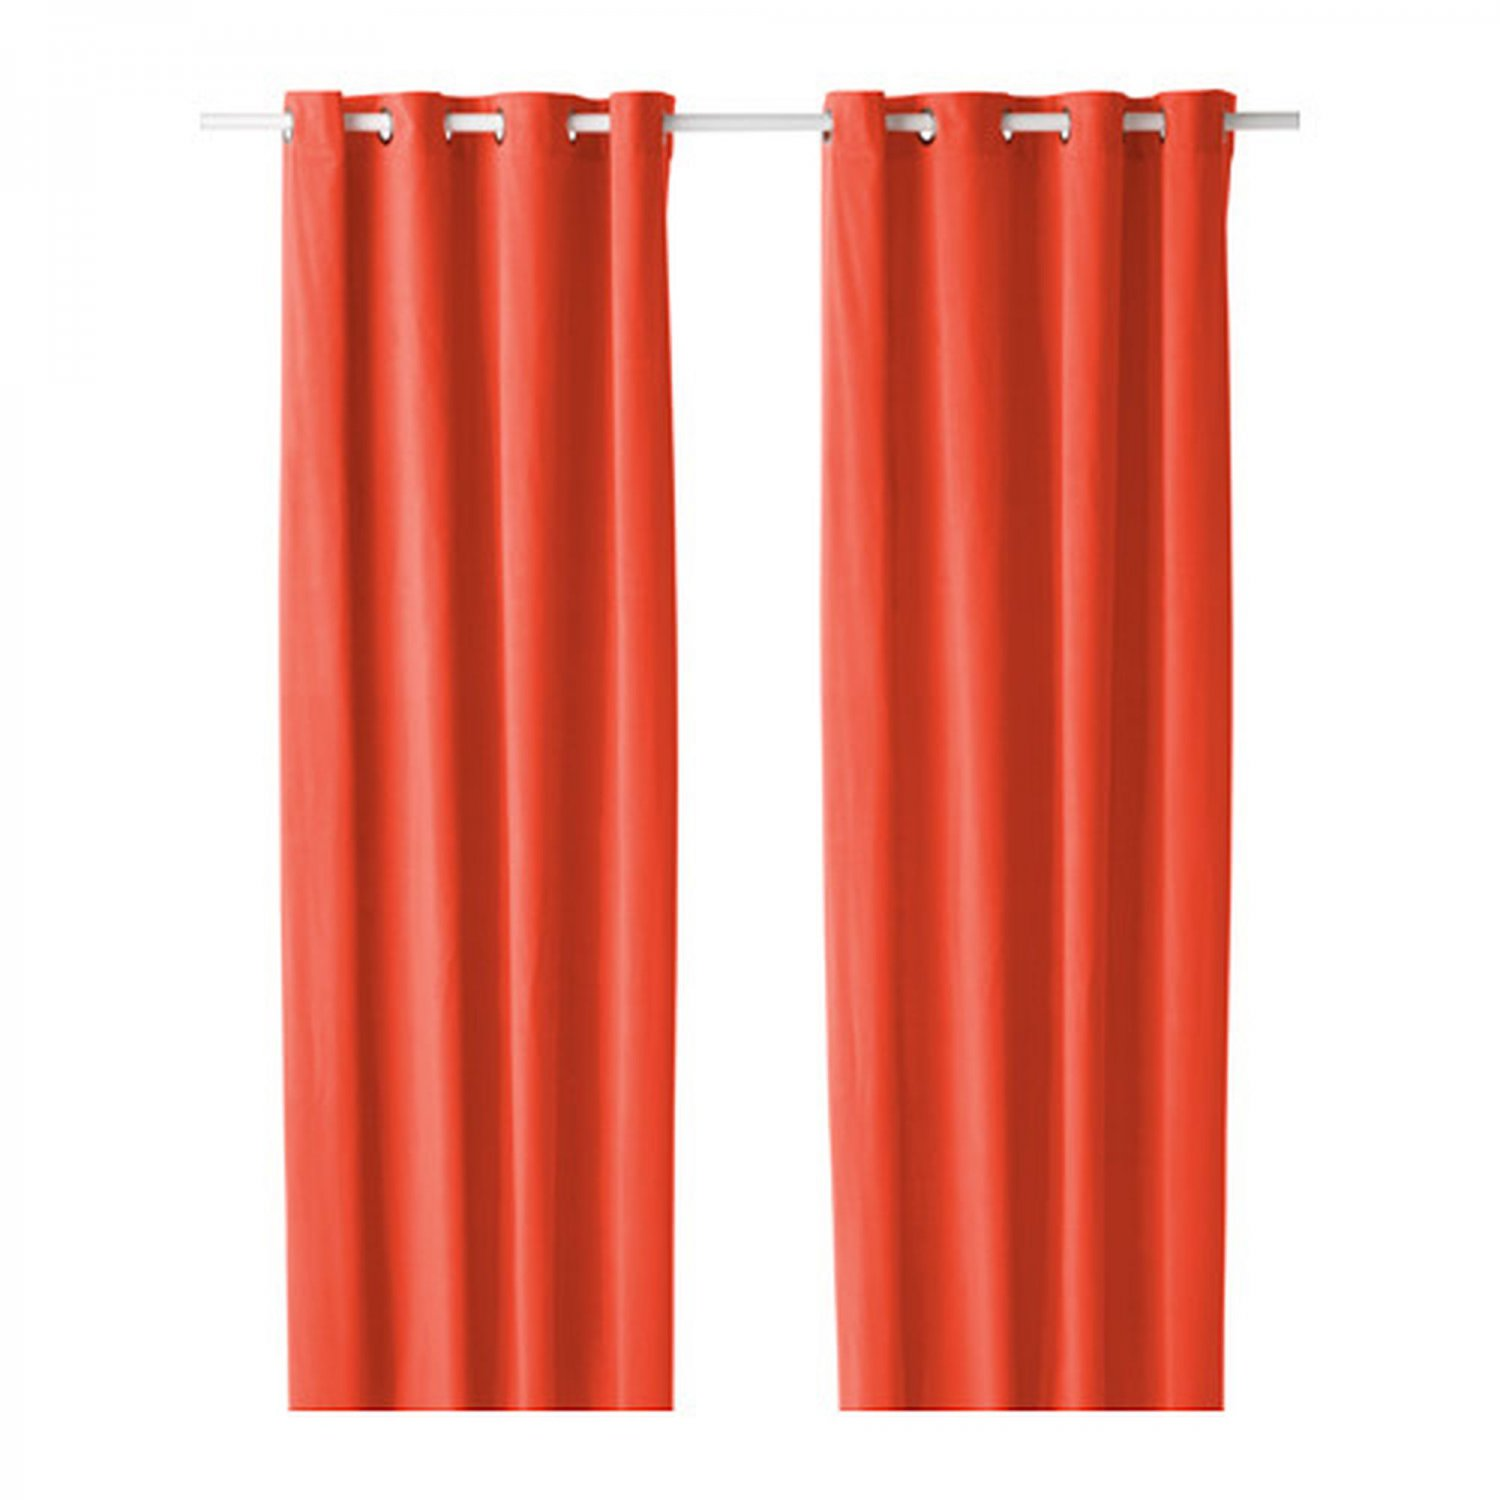 ikea sanela curtains drapes 2 panels orange velvet 98 grommet eyelet top. Black Bedroom Furniture Sets. Home Design Ideas